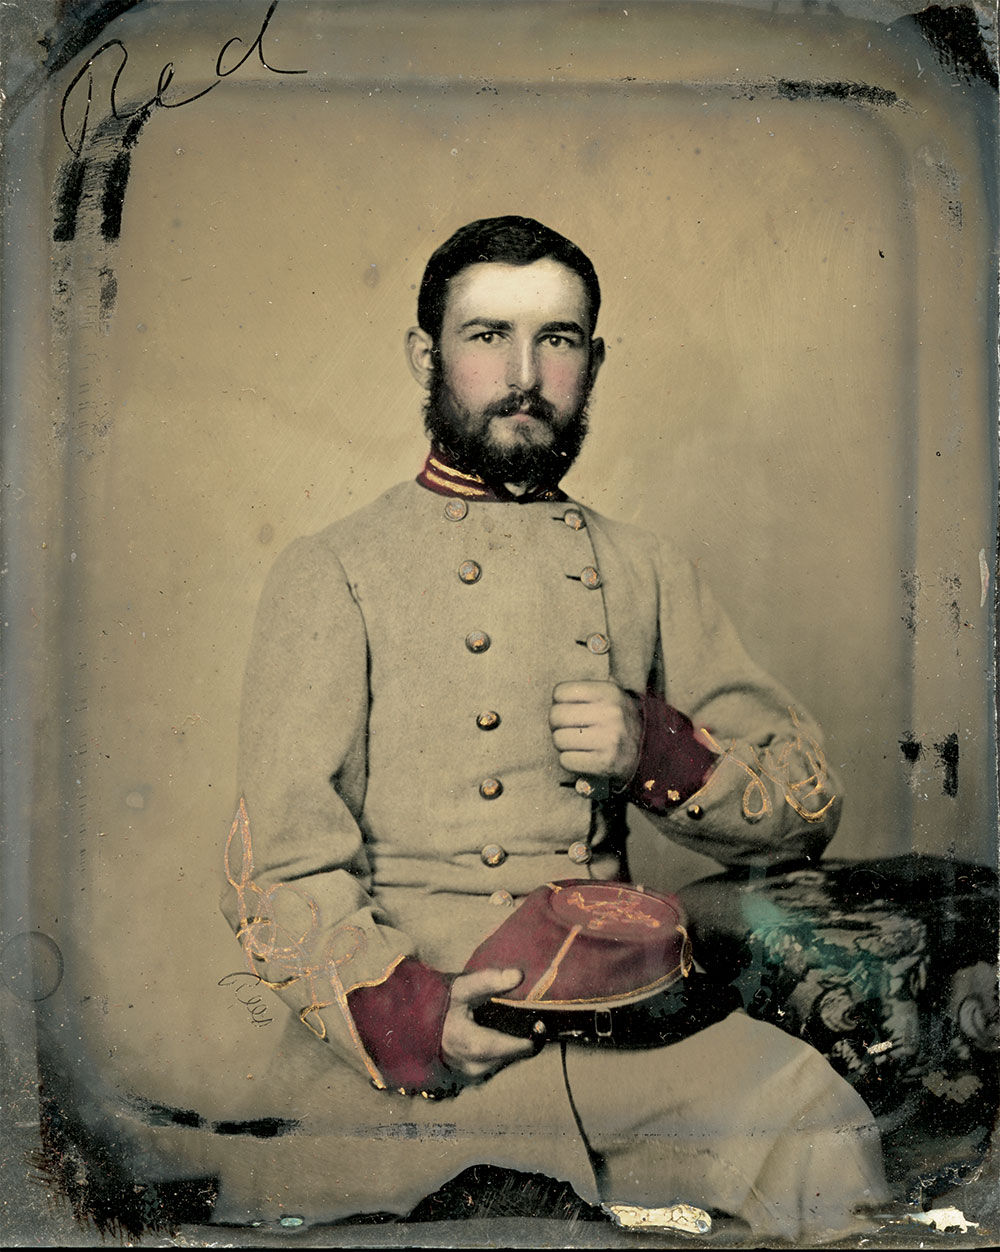 William Rice Jones pictured as a first lieutenant in the 4th Virginia Heavy Artillery, about 1862. Sixth-plate ambrotype by Charles R. Rees of Richmond, Va. Courtesy of the Jones-Horsman Family.